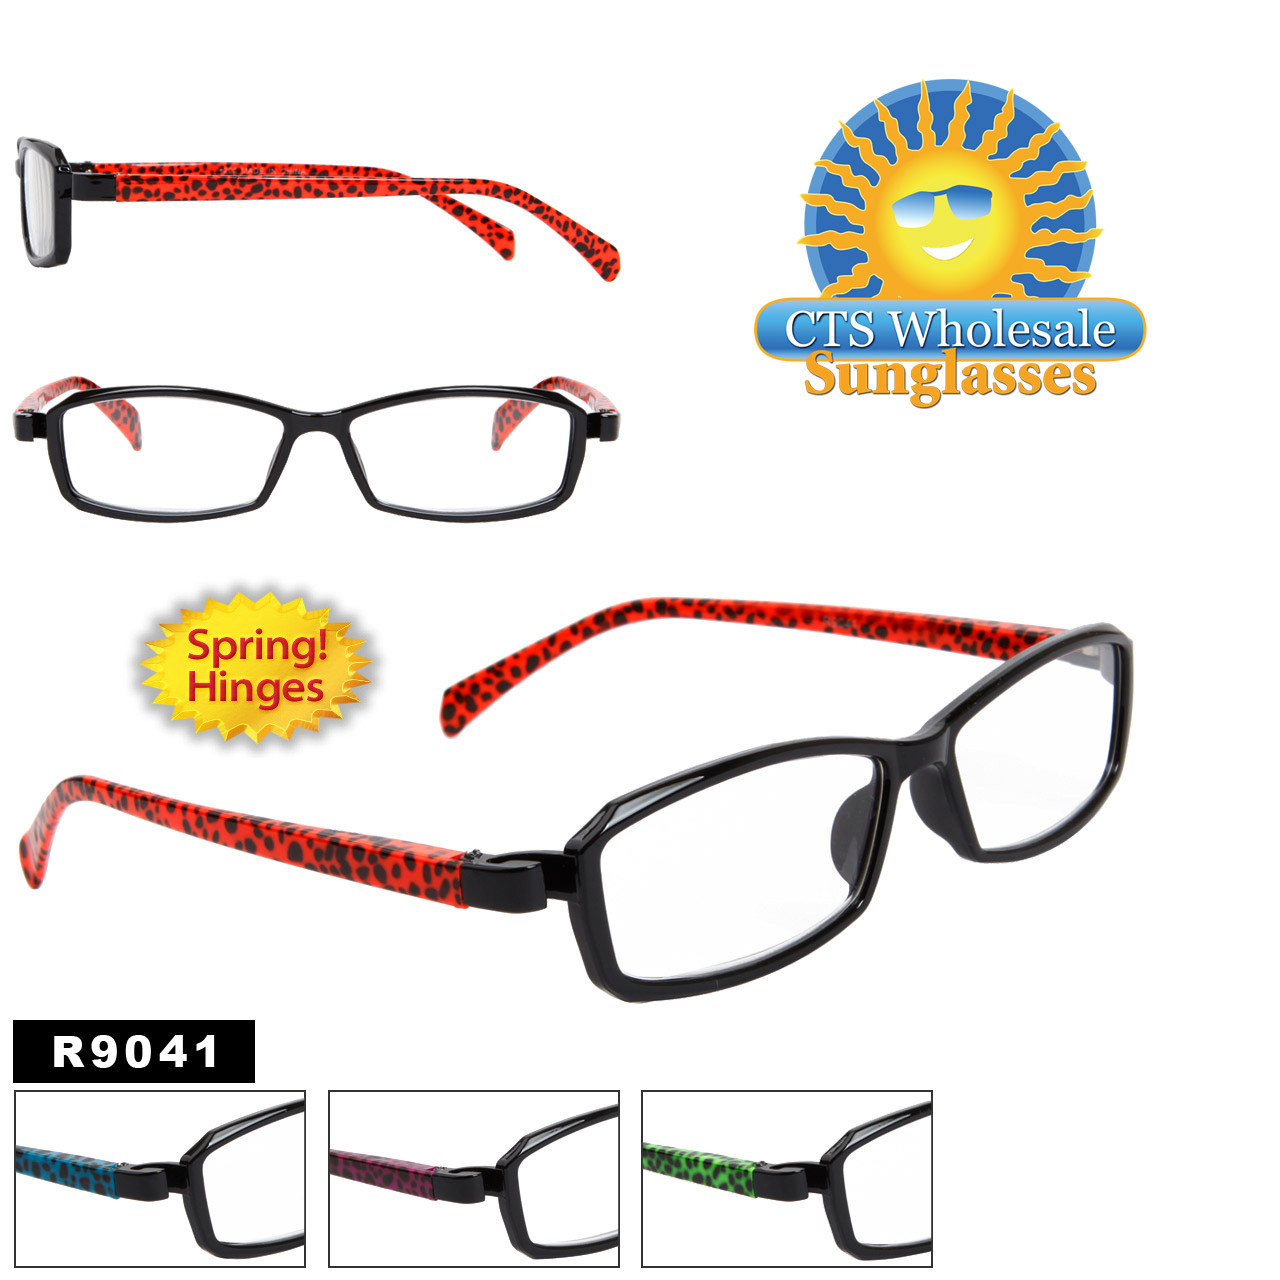 Reading Glasses Wholesale R9041 Spring Hinges